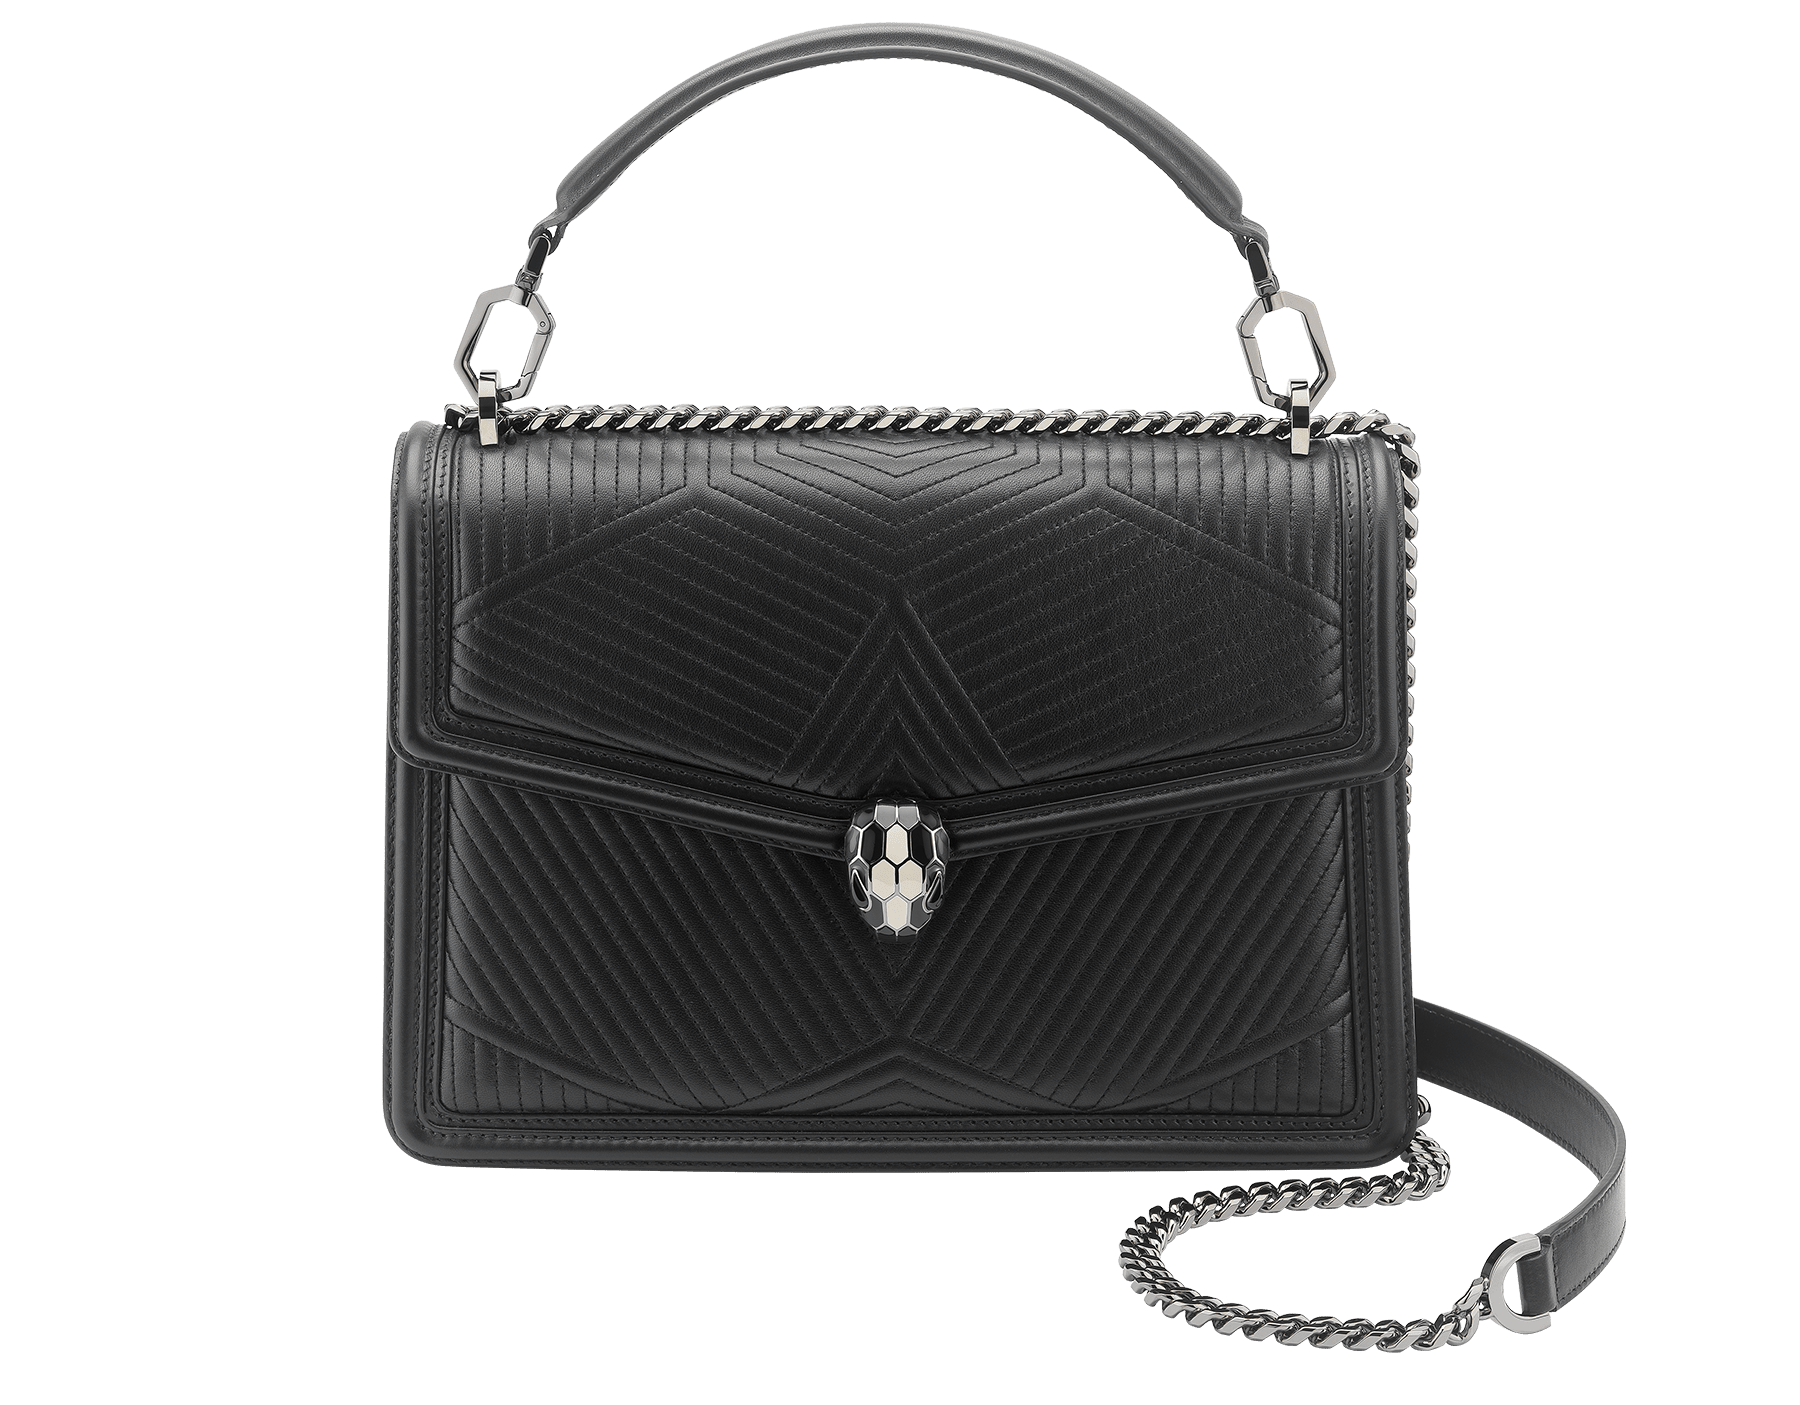 """Serpenti Diamond Blast"" shoulder bag in black quilted nappa leather body and black calf leather frames. Iconic snakehead closure in dark ruthenium plated brass enriched with black and white enamel and black onyx eyes. 973-FQDa image 1"